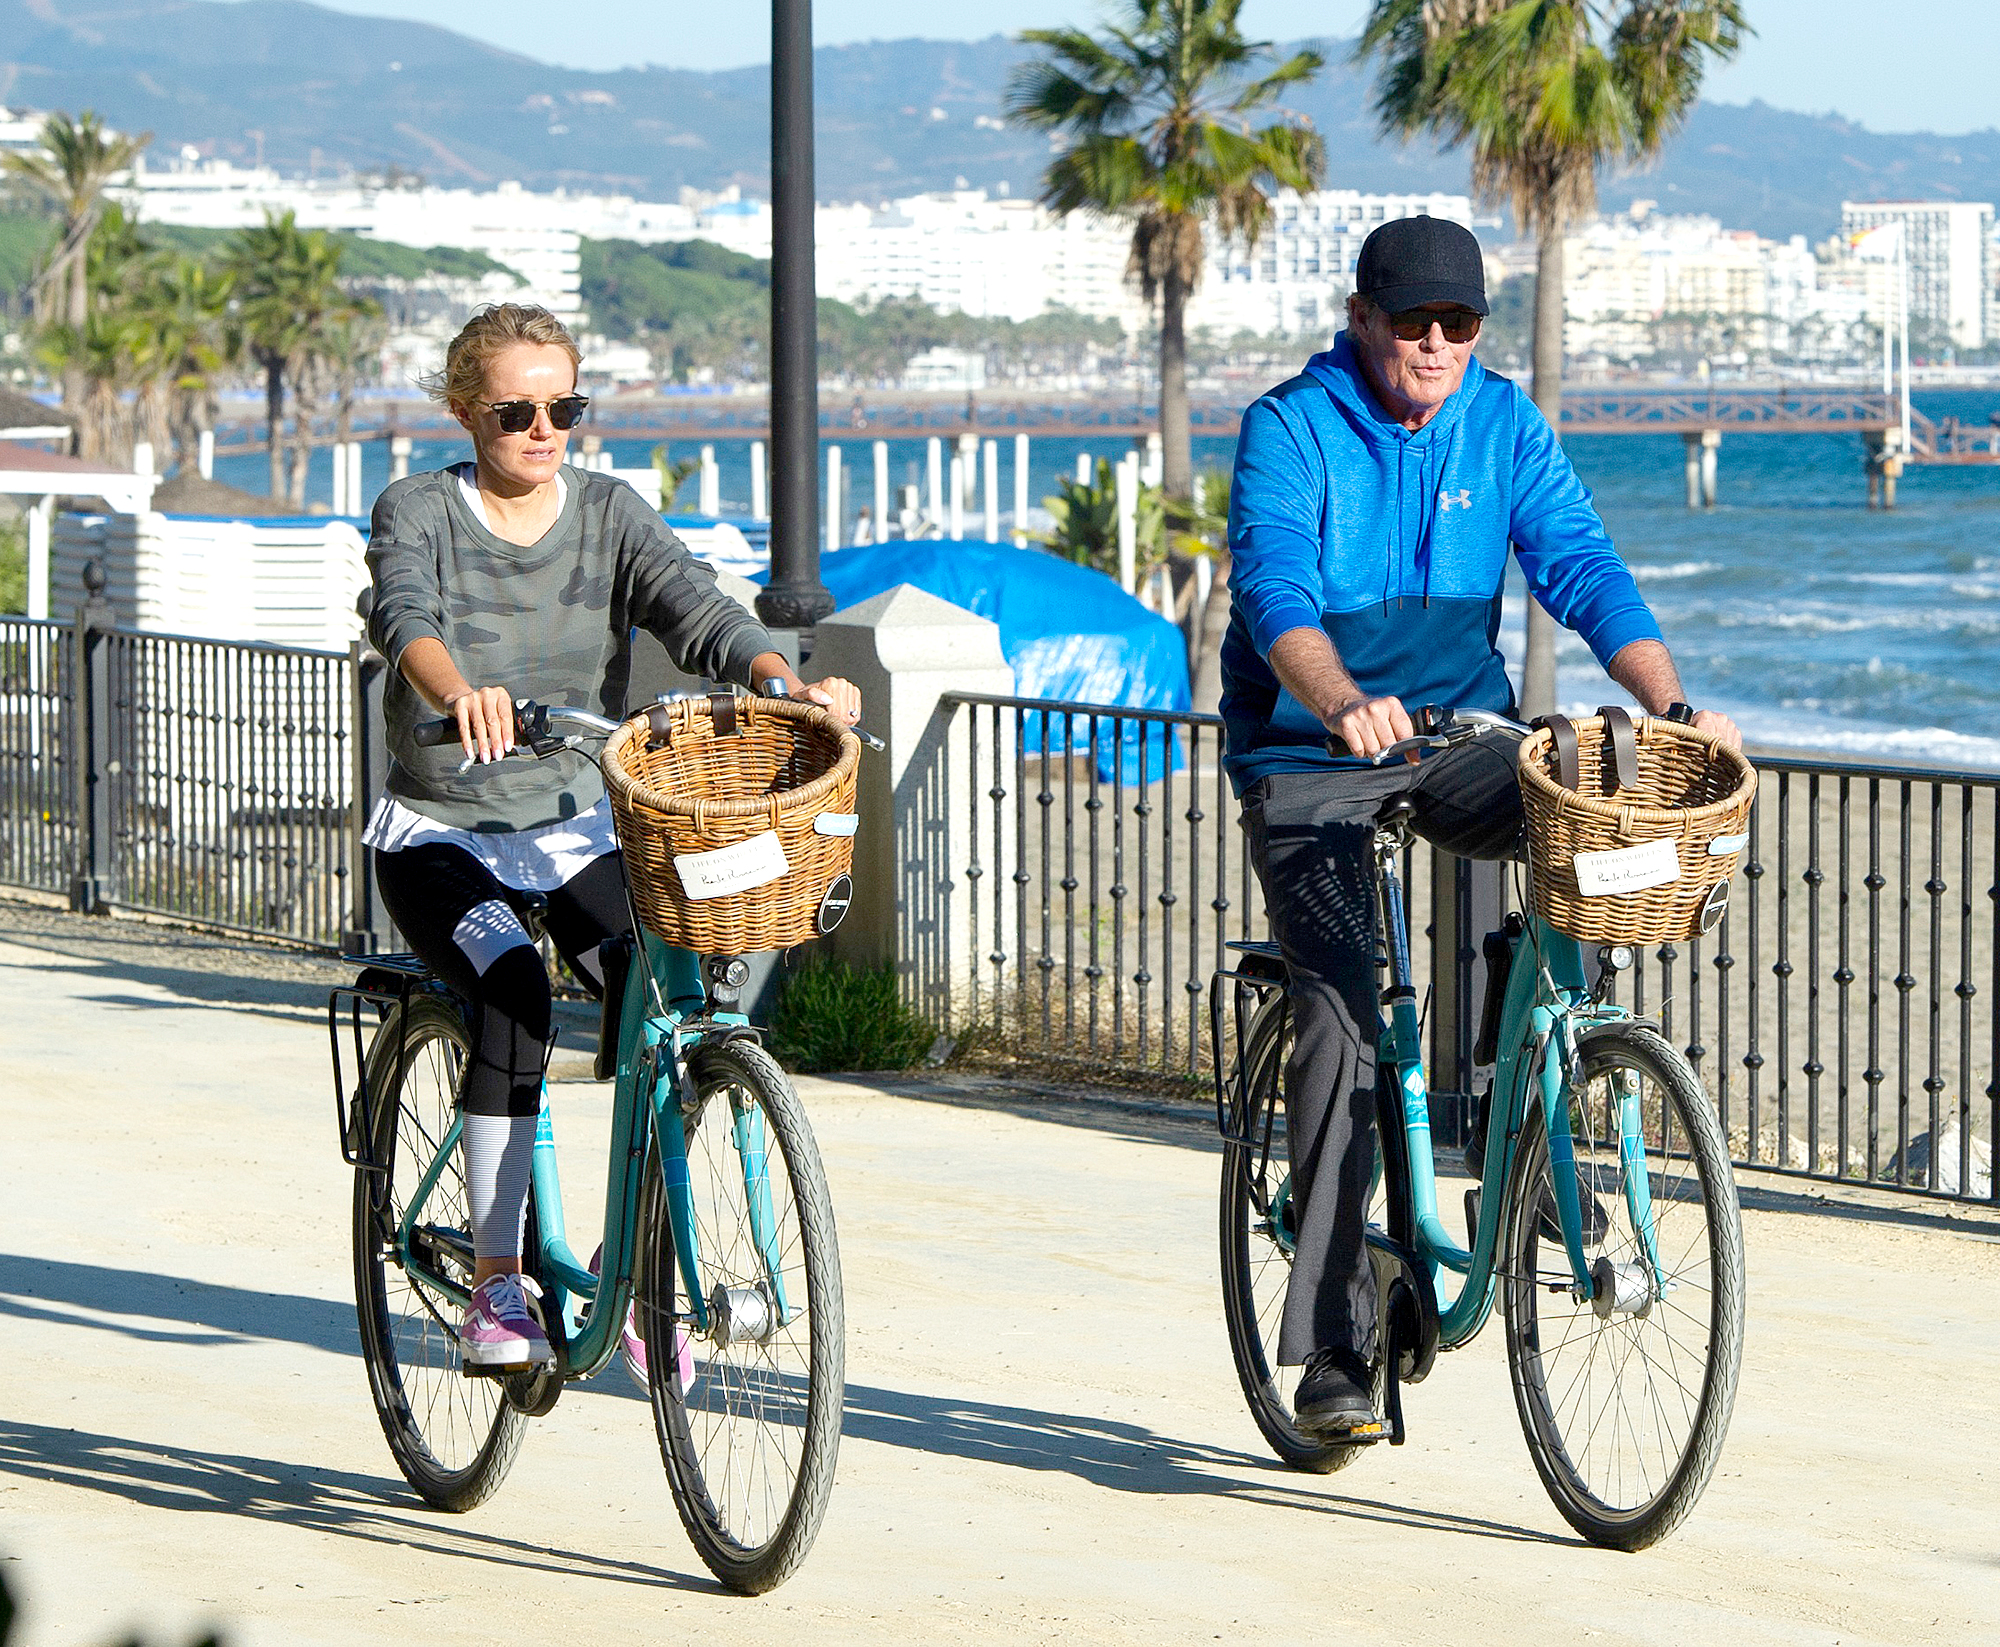 David-Hasselhoff--Hayley-Roberts-biking - On December 31, 2018, the Baywatch alum and his wife enjoyed a ride by the sea on vacation in Marbella, Spain.